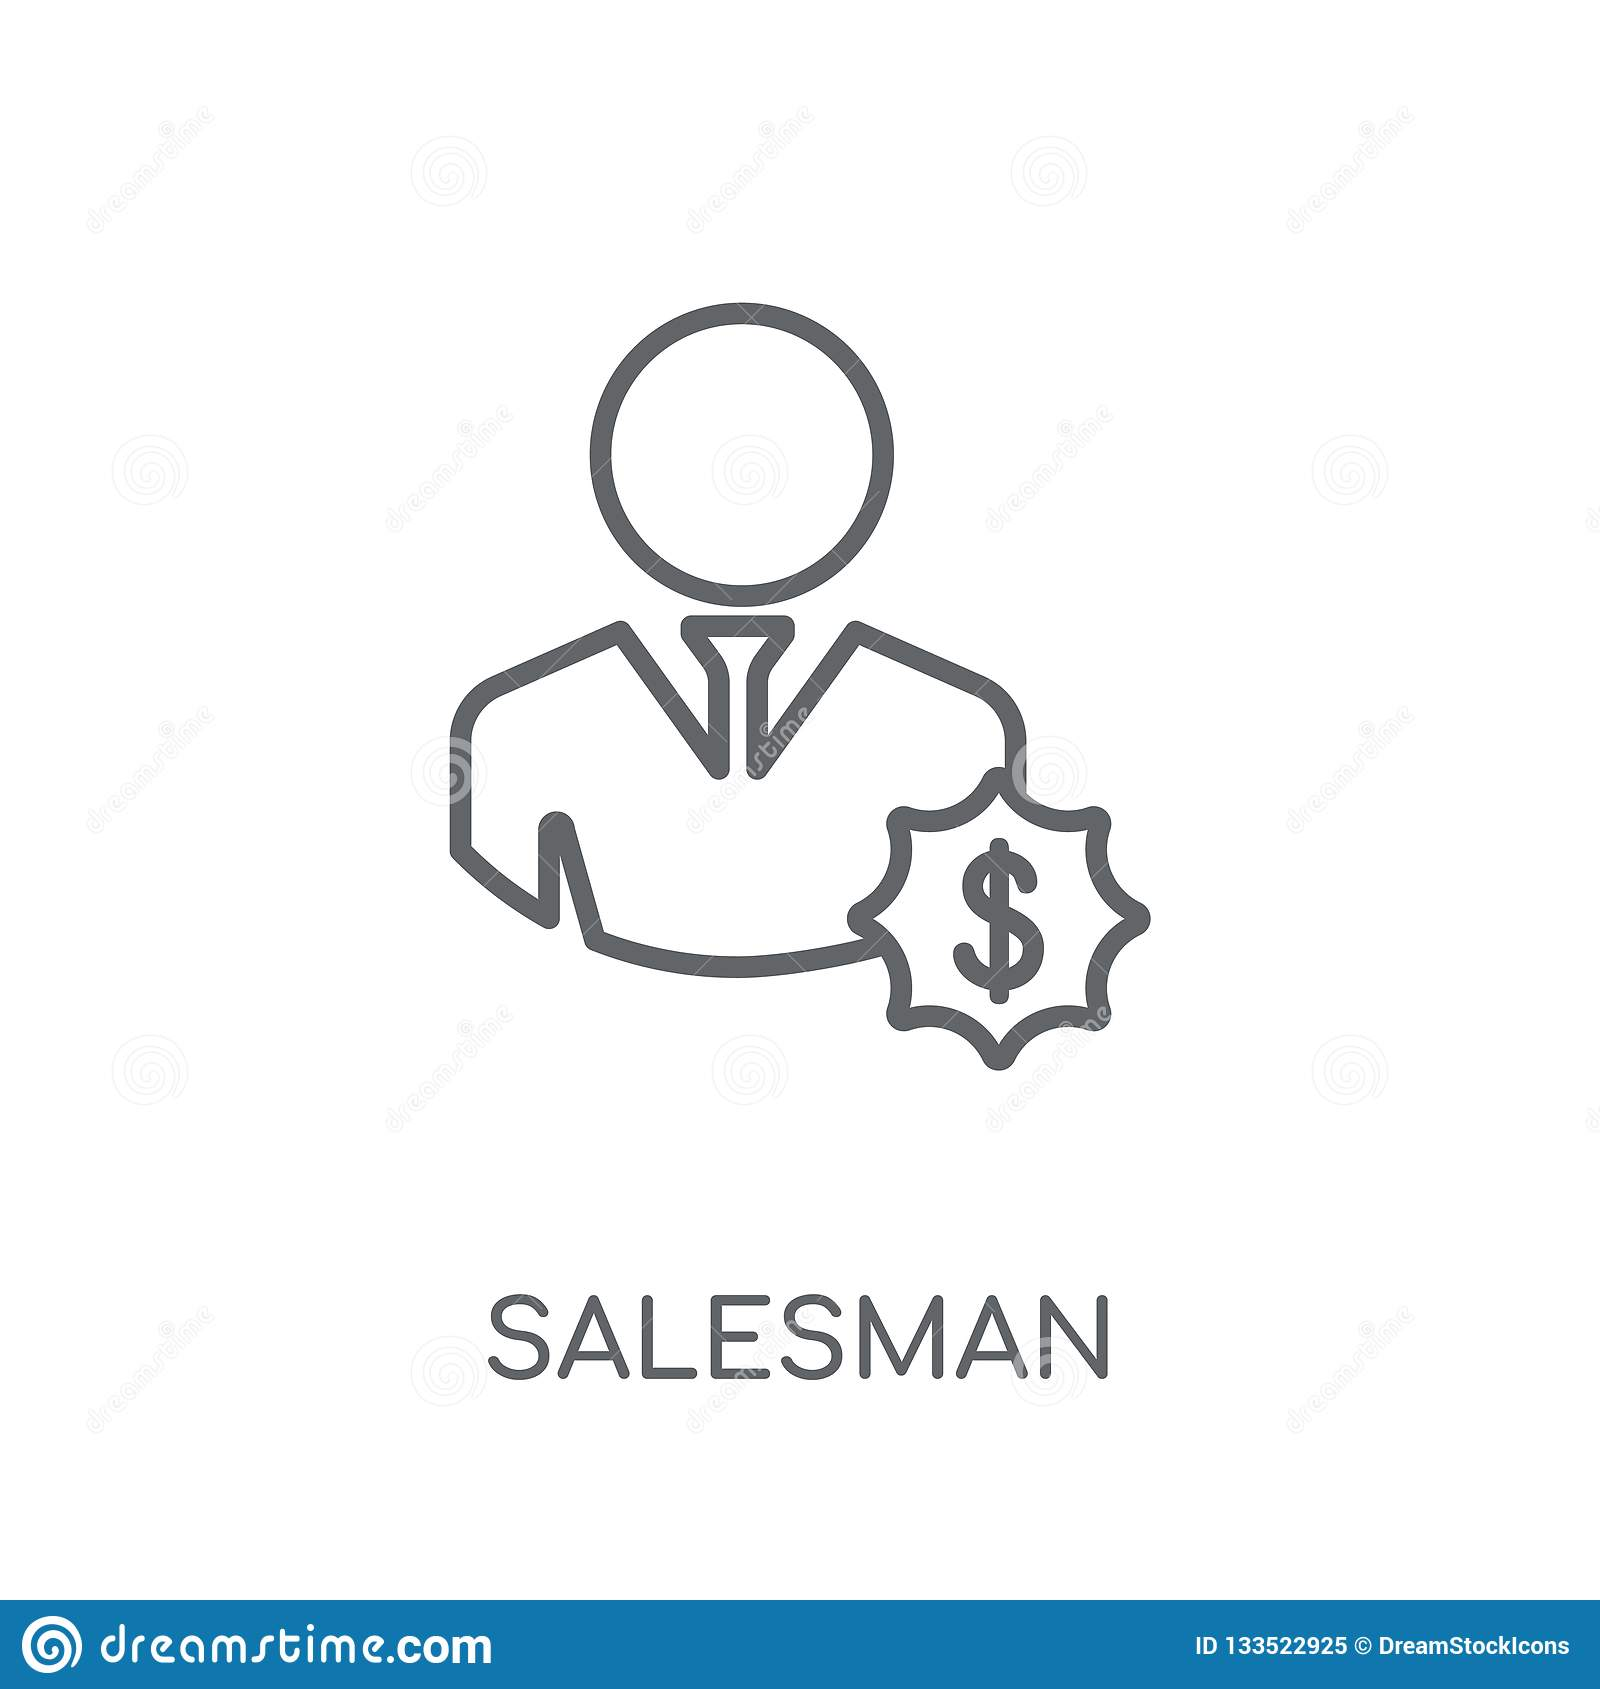 Salesman linear icon. Modern outline Salesman logo concept on wh